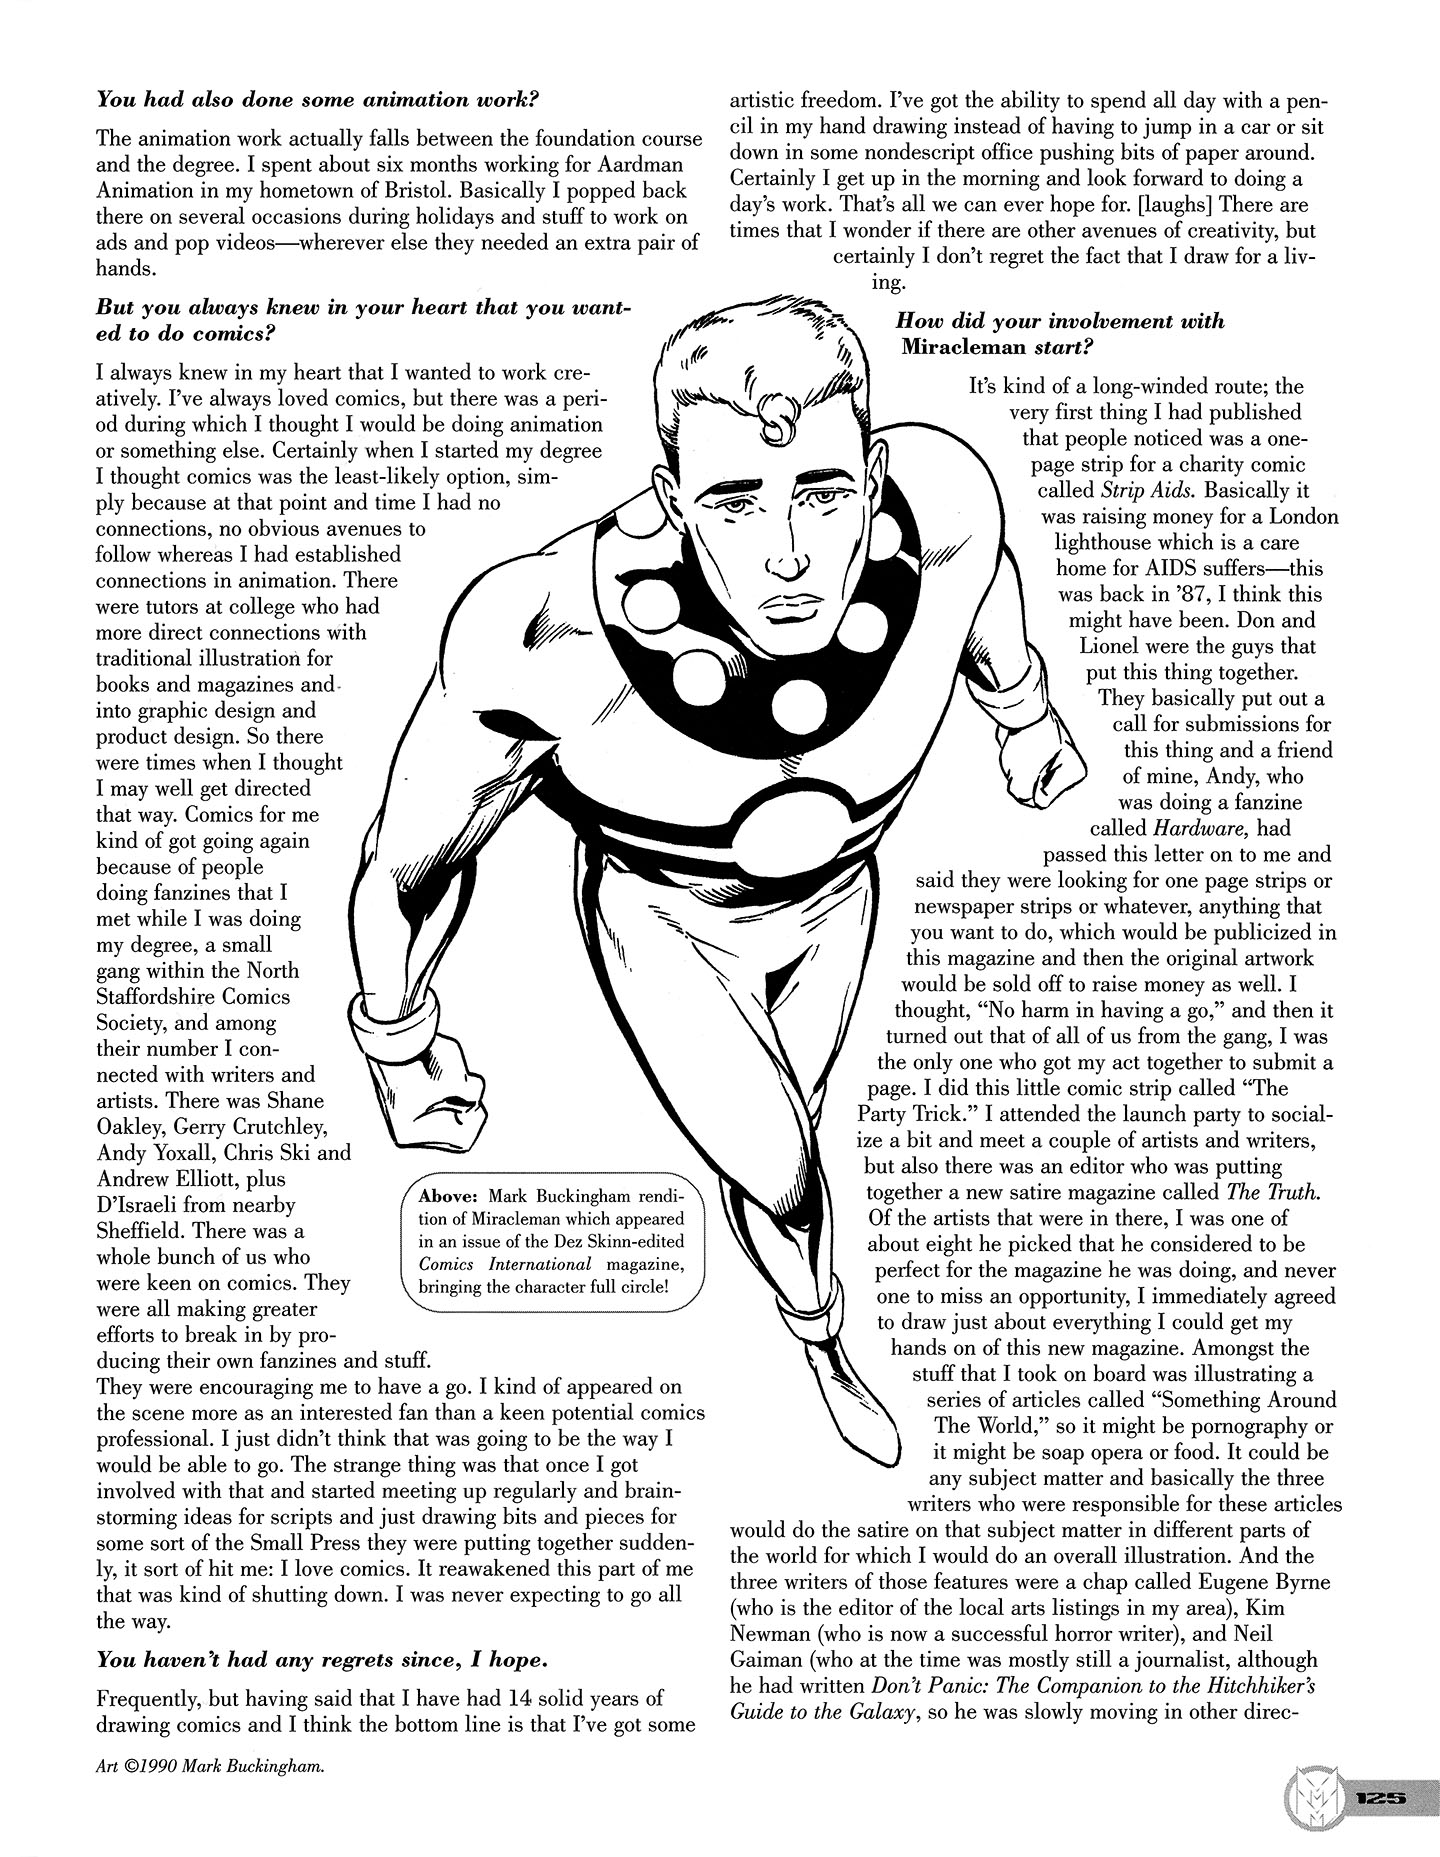 Read online Kimota!: The Miracleman Companion comic -  Issue # Full - 126